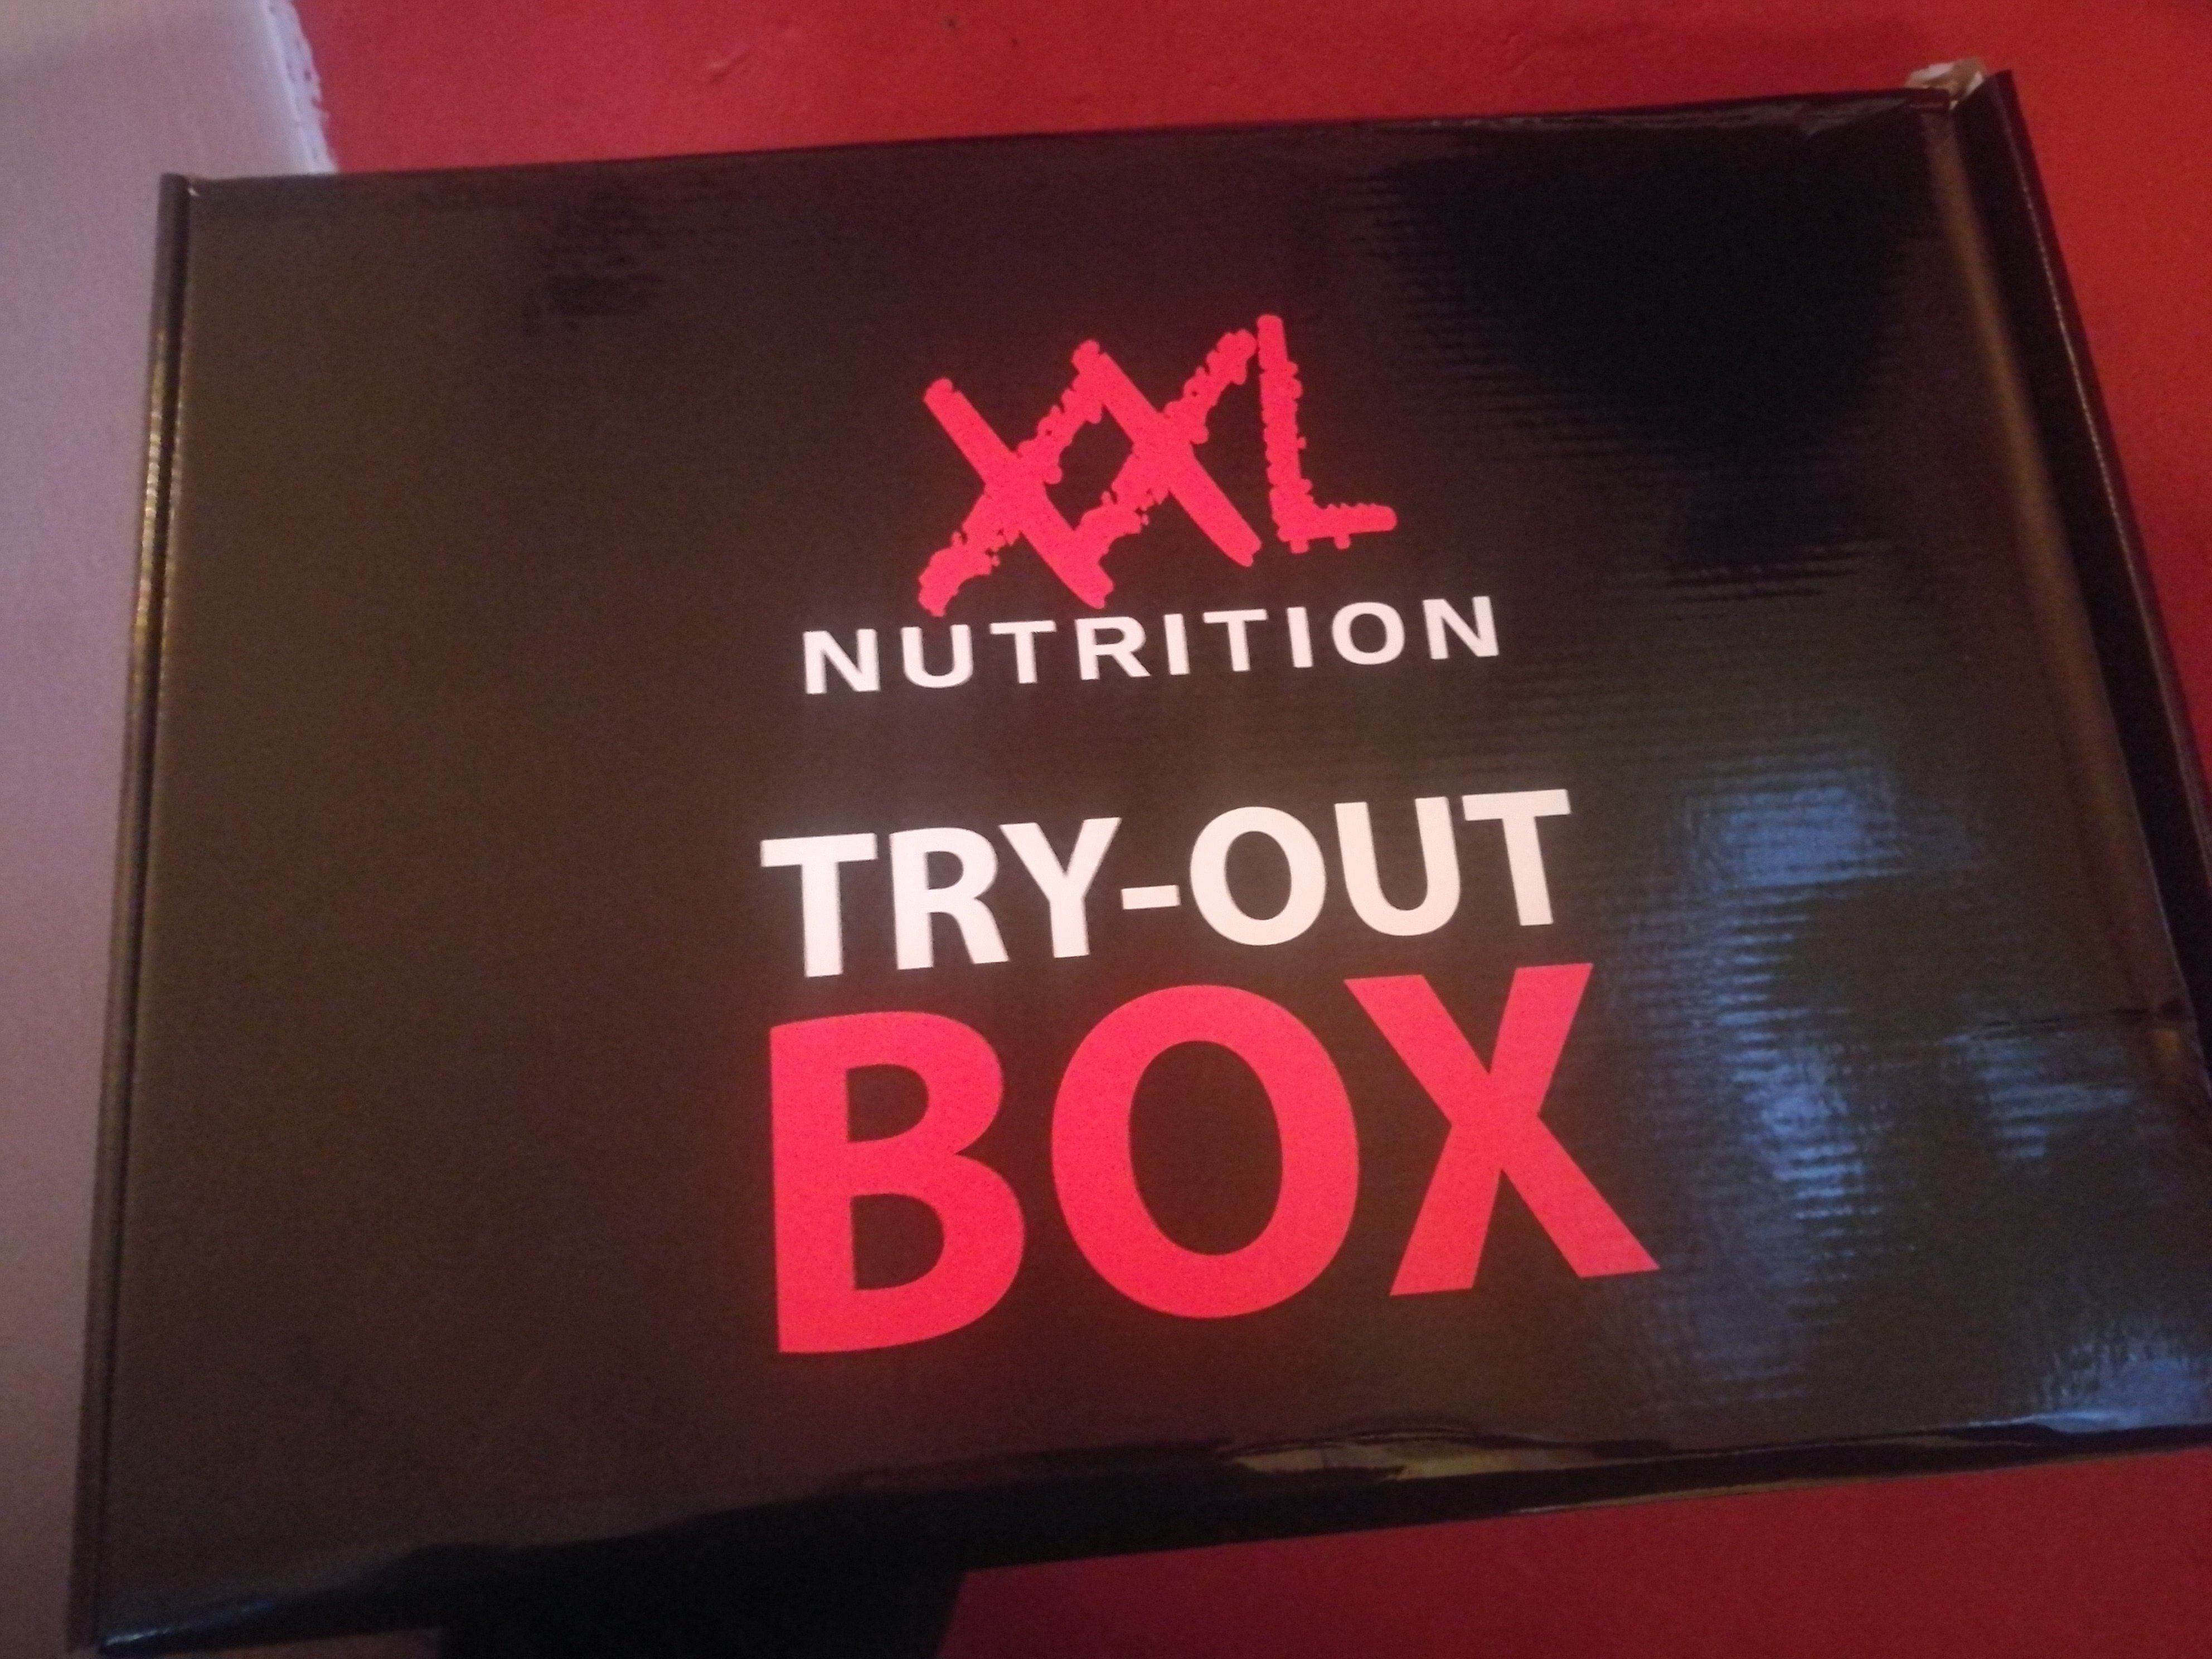 XXL Nutrition Try-Out Box